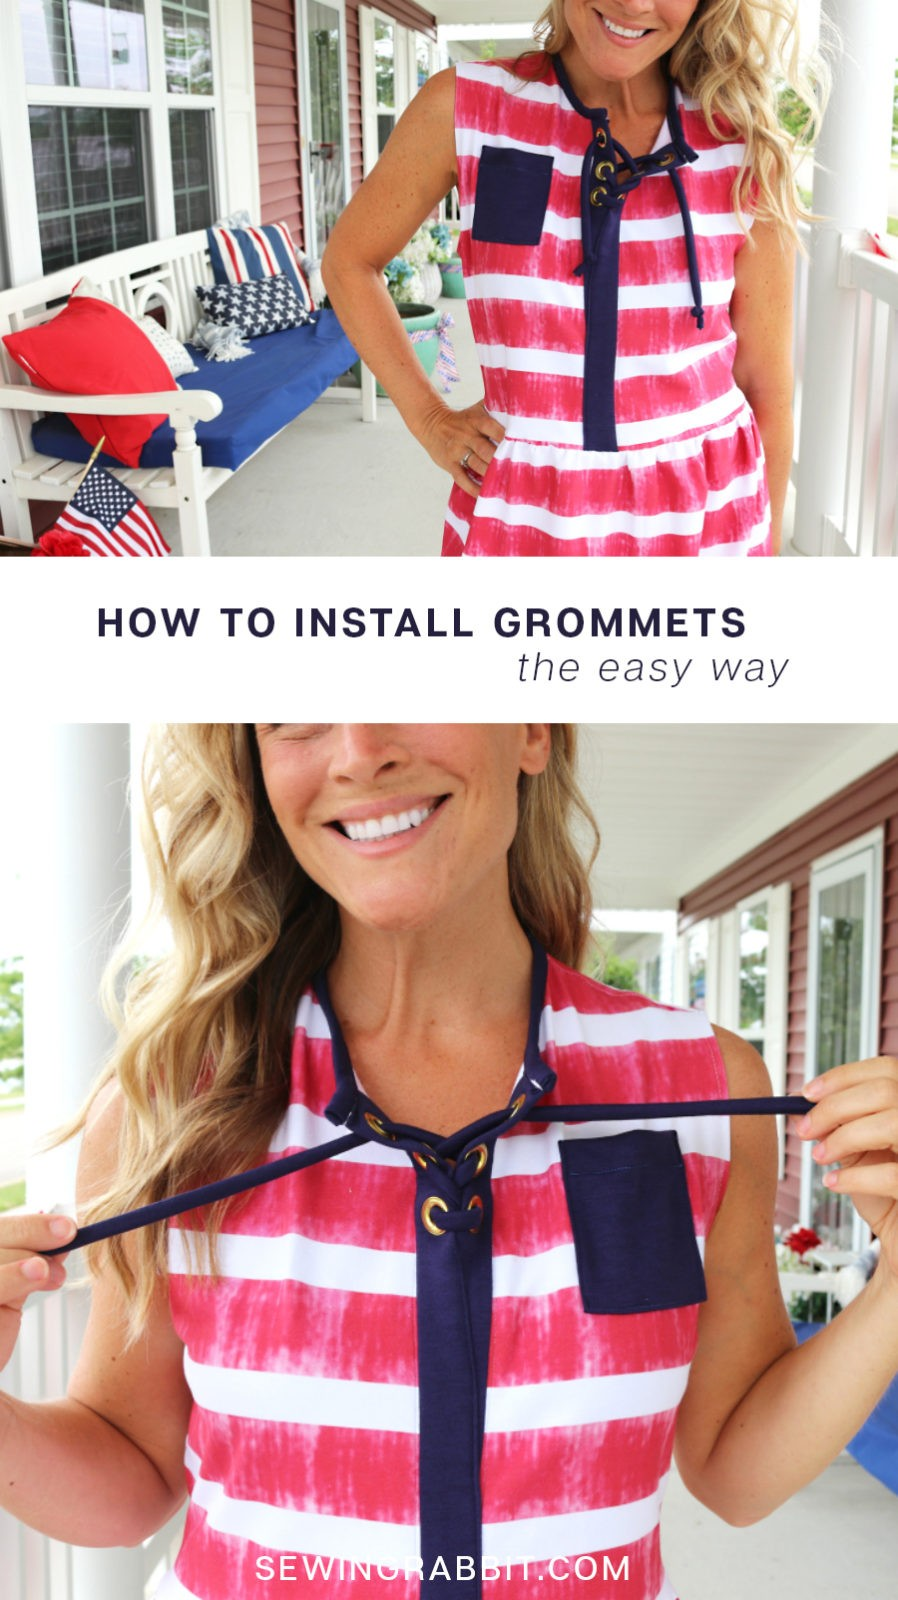 how to install grommets, the easy way